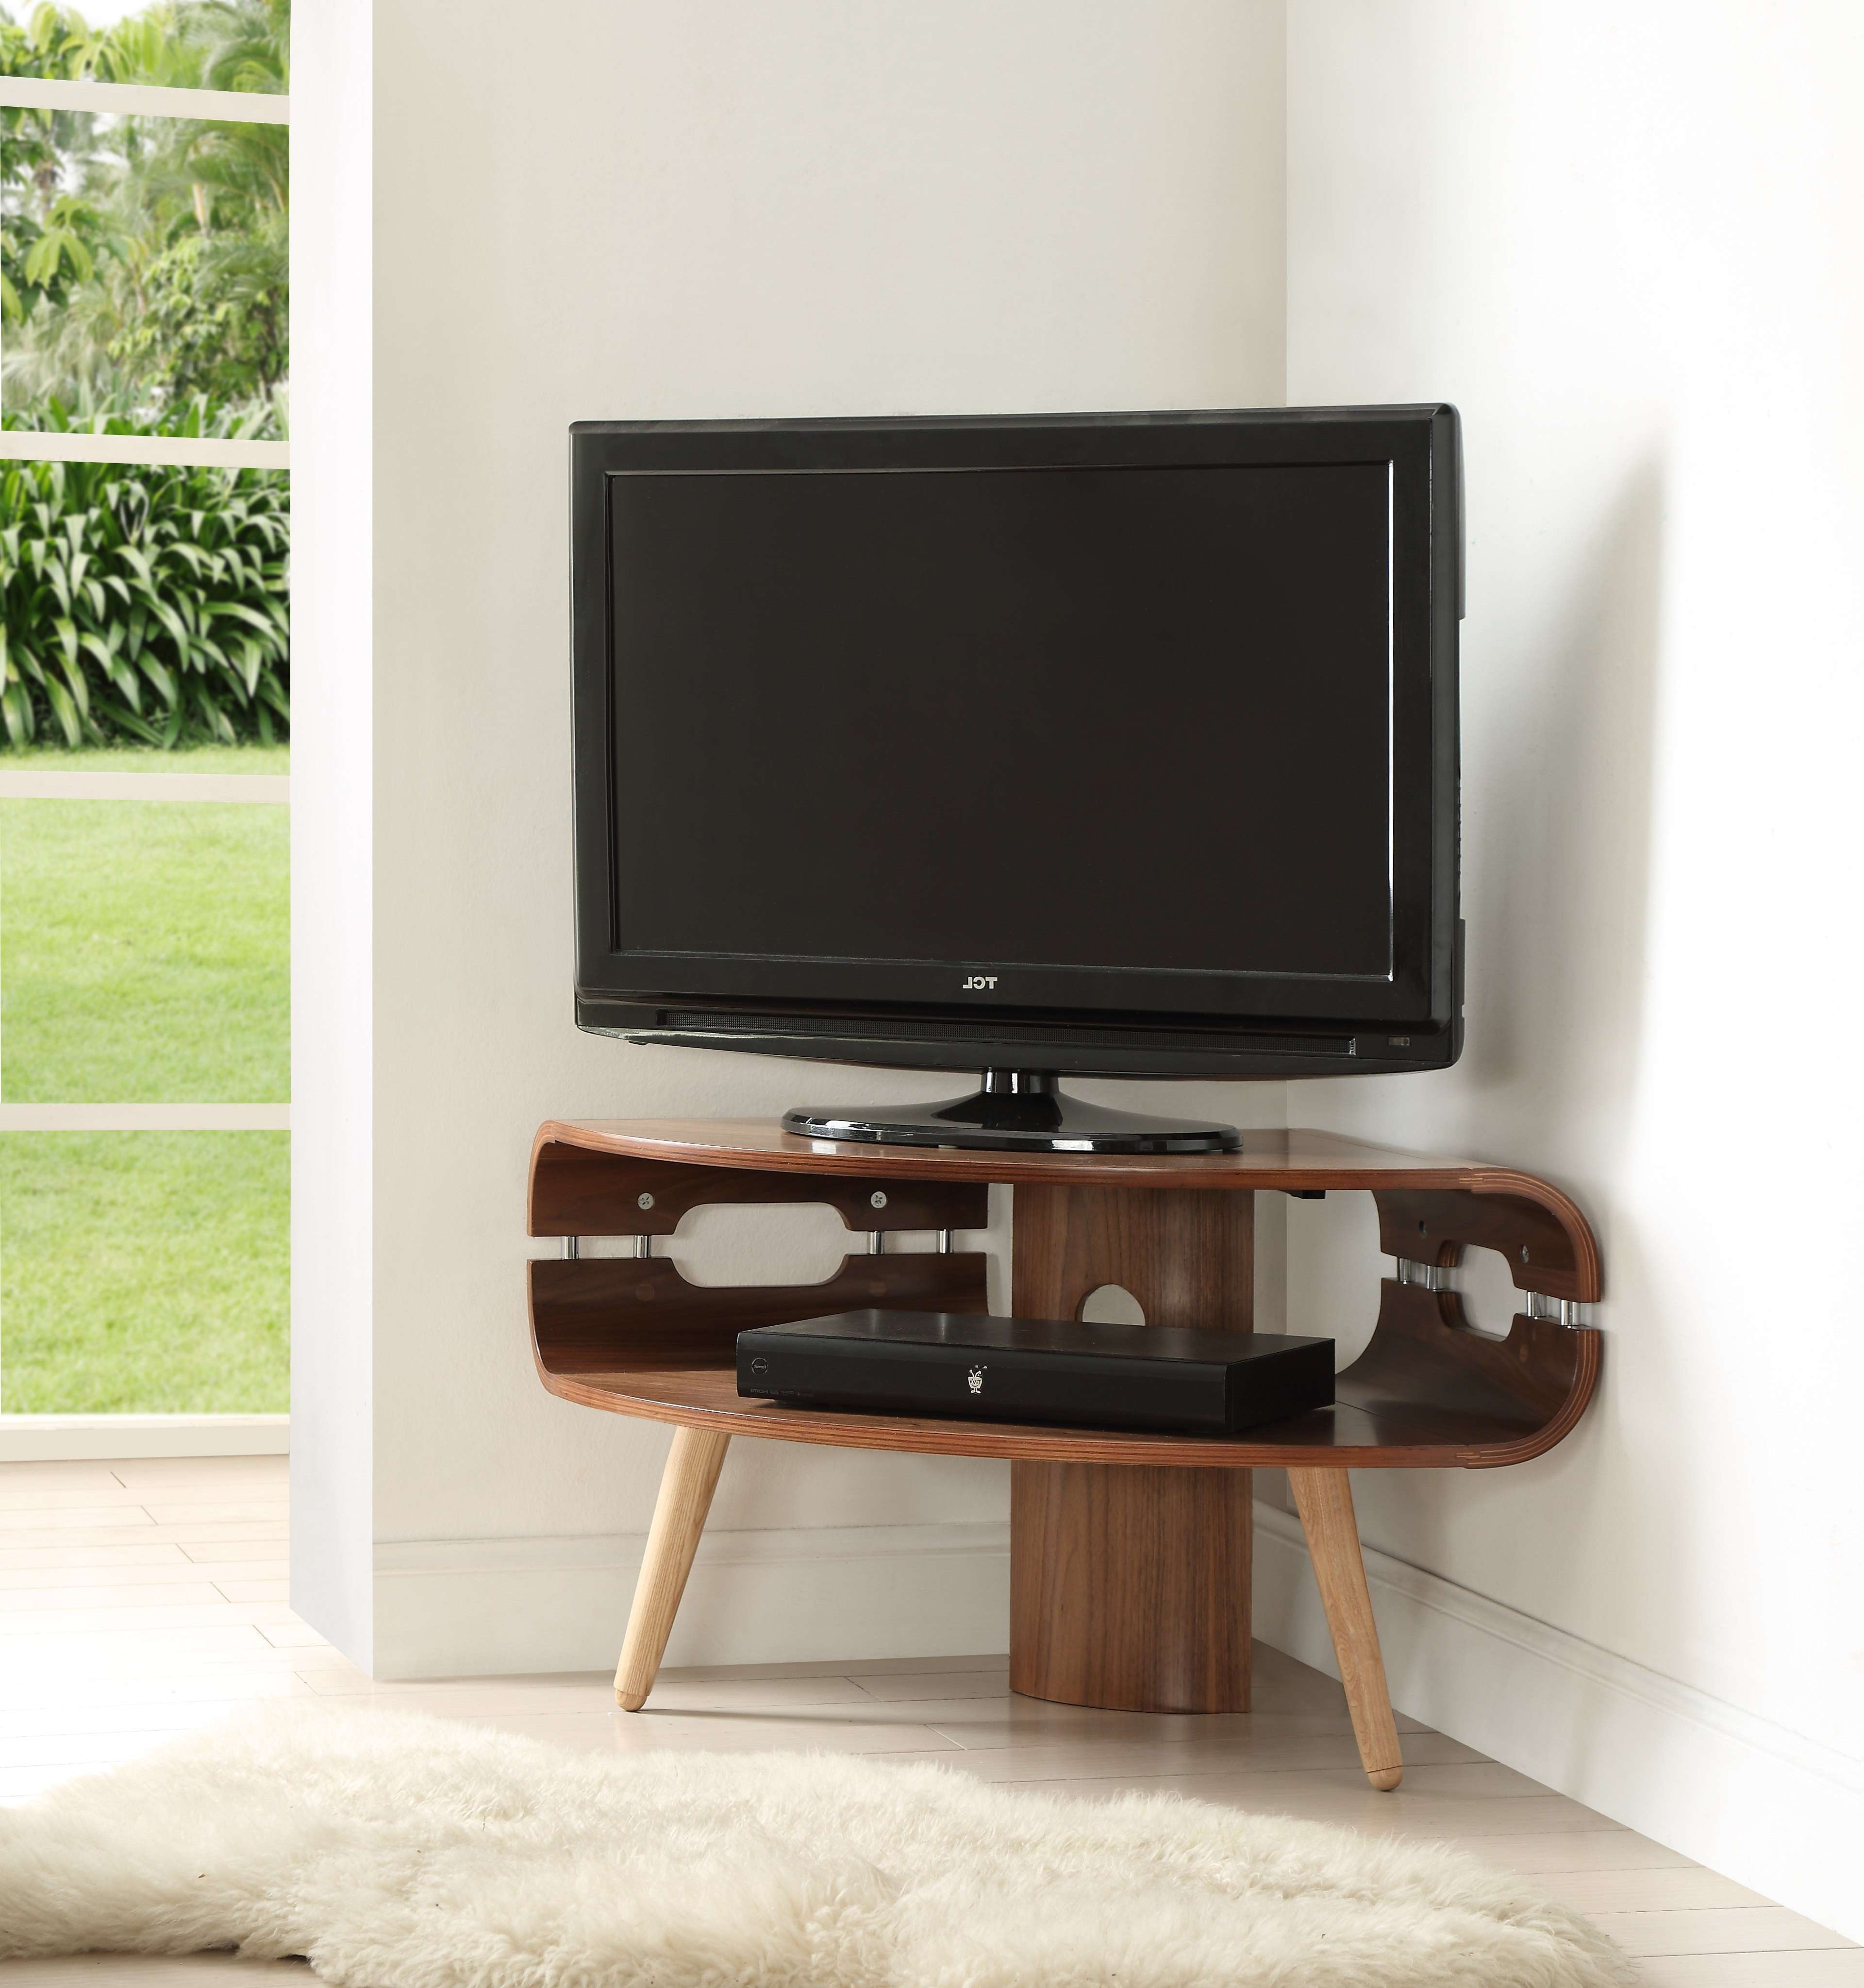 Tv : 100Cm Tv Stands Engaging 100 Cm Long Tv Stands' Top 100 Cm For 100Cm Tv Stands (View 8 of 15)